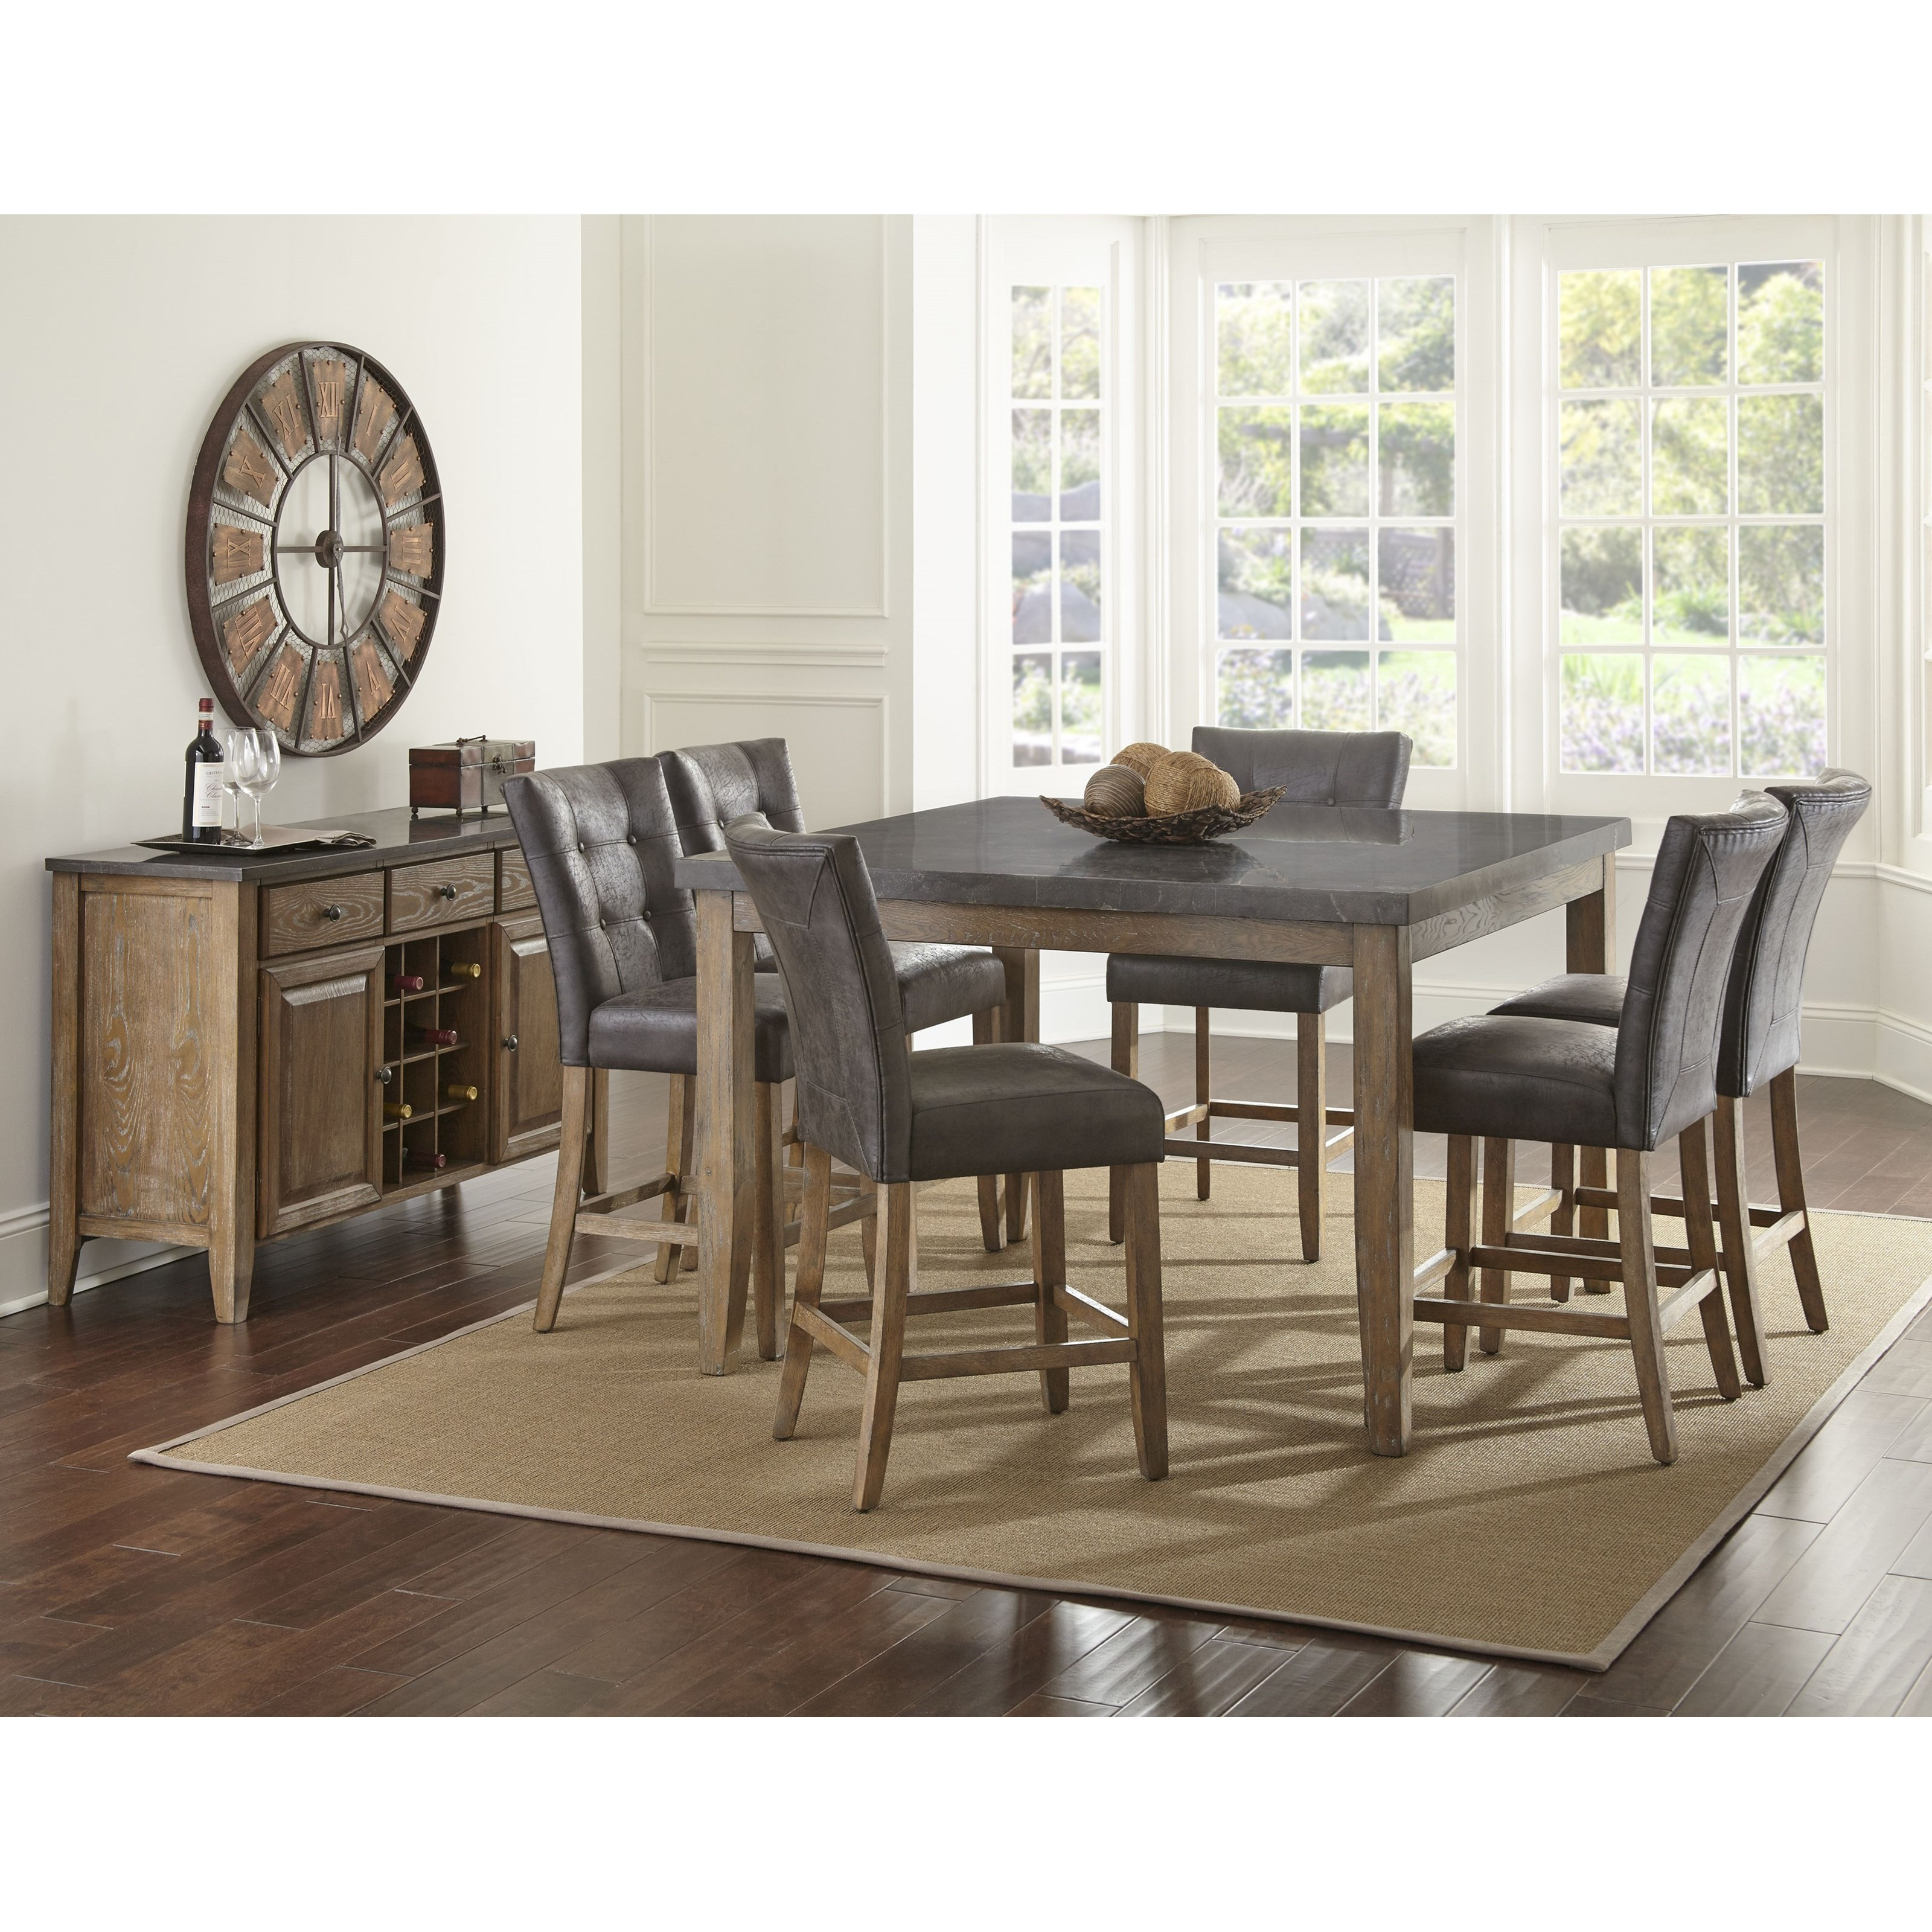 Steve Silver Harmony 7 Piece Oval Dining Room Set In: Steve Silver Debby 7 Piece Transitional Square Table And